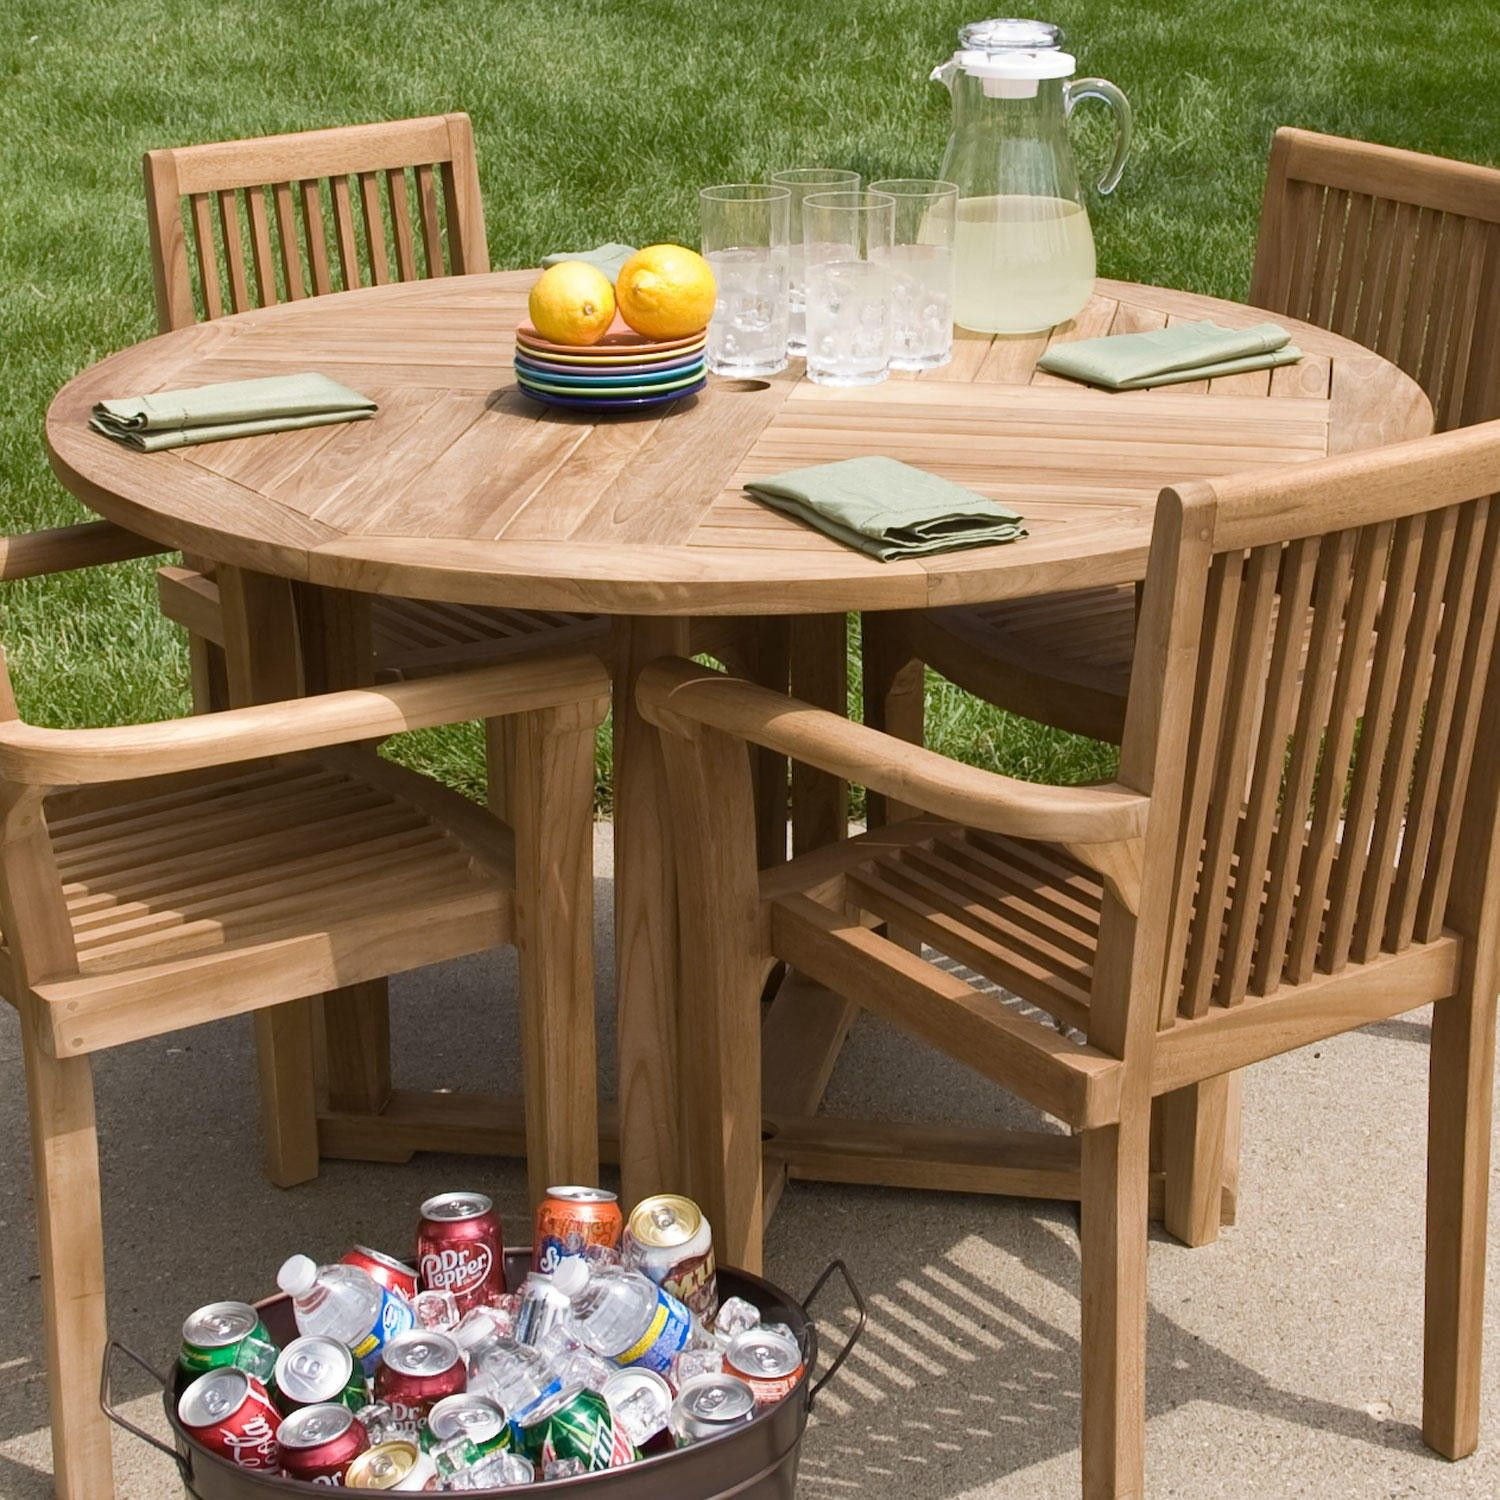 Teak Outdoor Round Dining Table Round Patio Table Teak Patio Furniture Outdoor Furniture